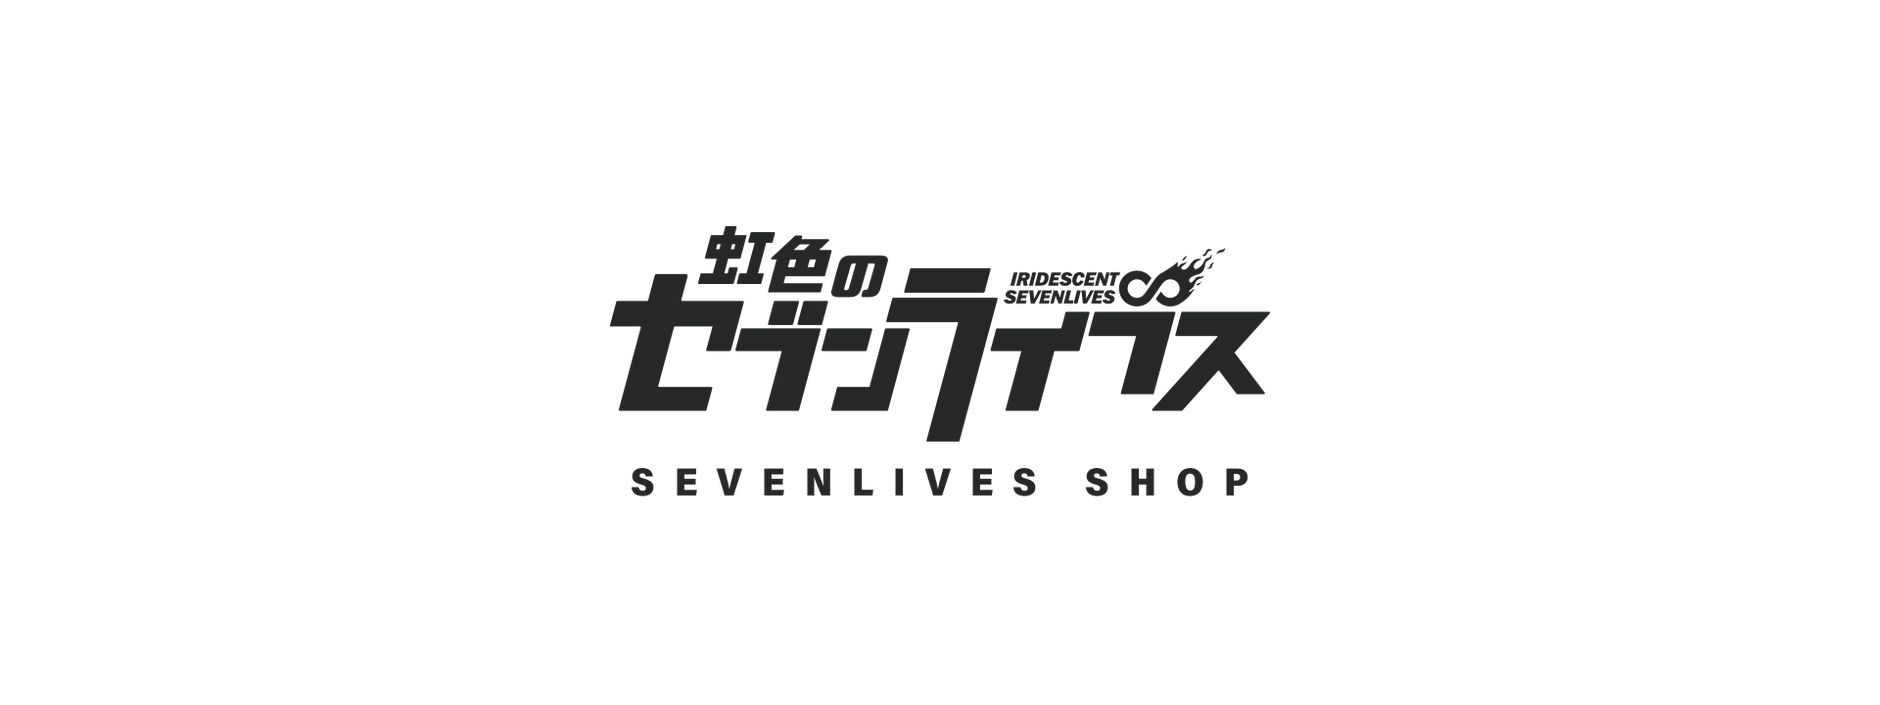 SEVENLIVES SHOP